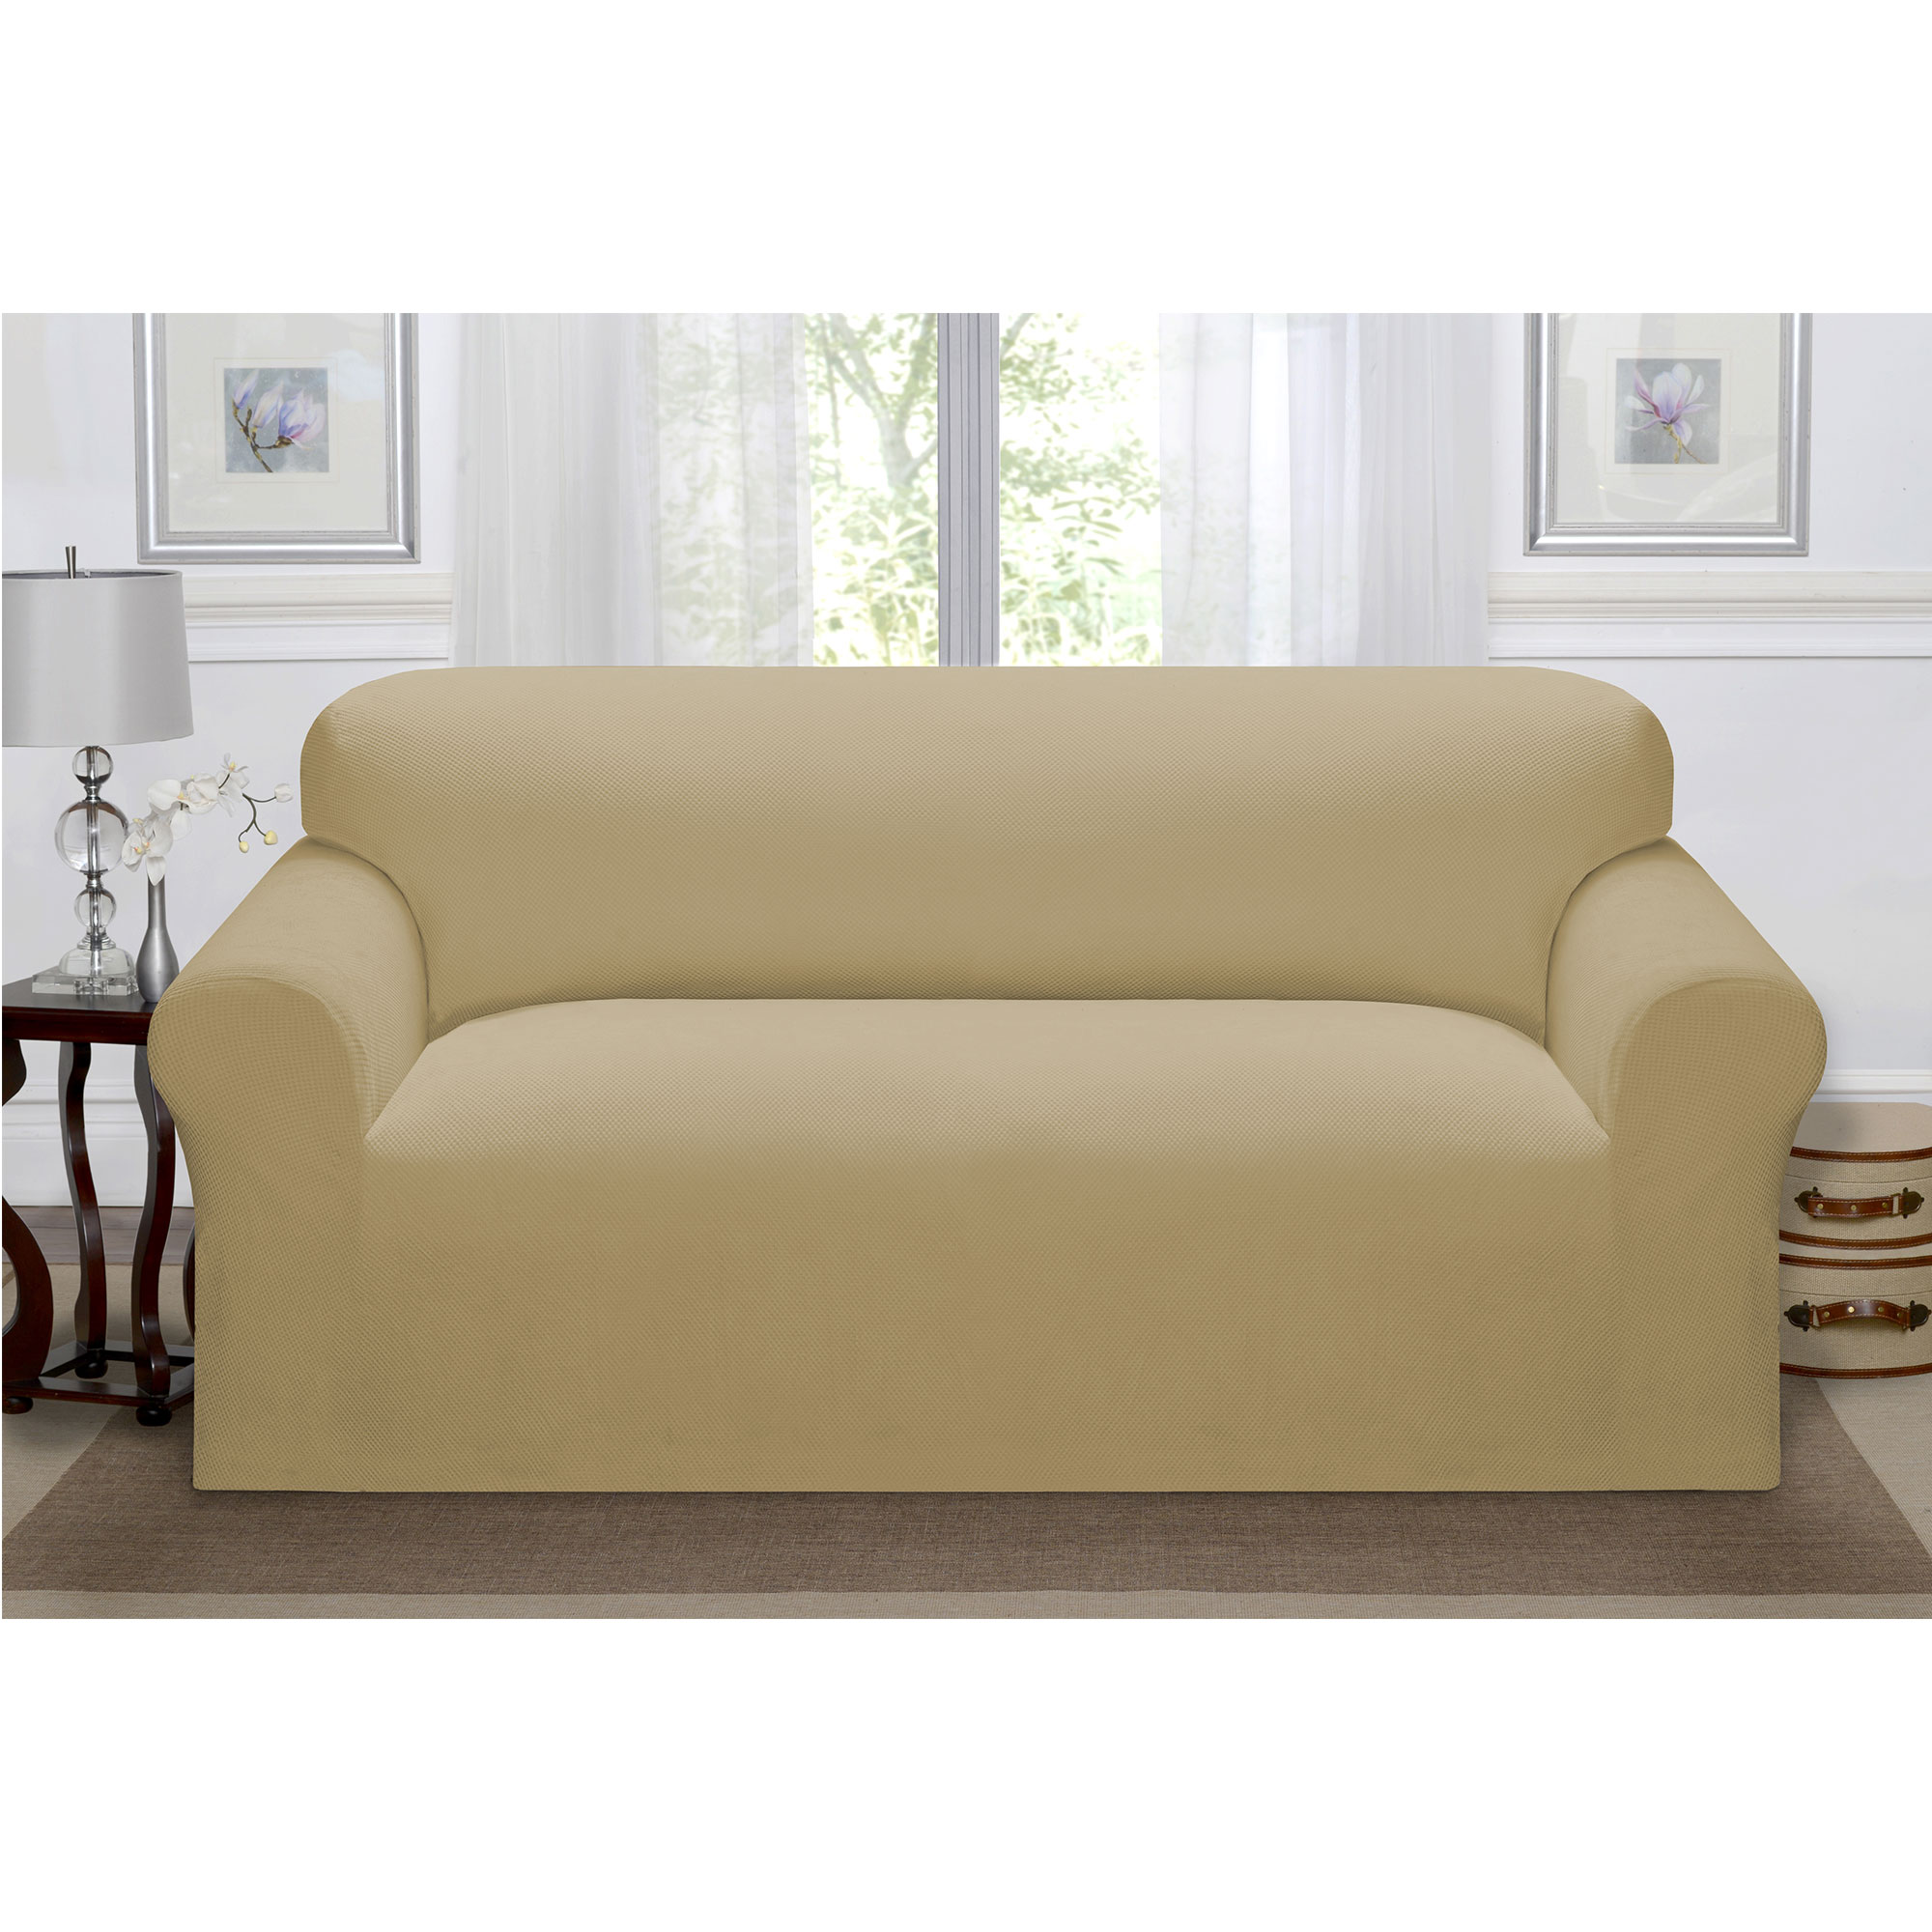 Madison Home Stretch Pique Furniture Slipcover, Soft Waffle Textured Pattern (Sofa, Beige)